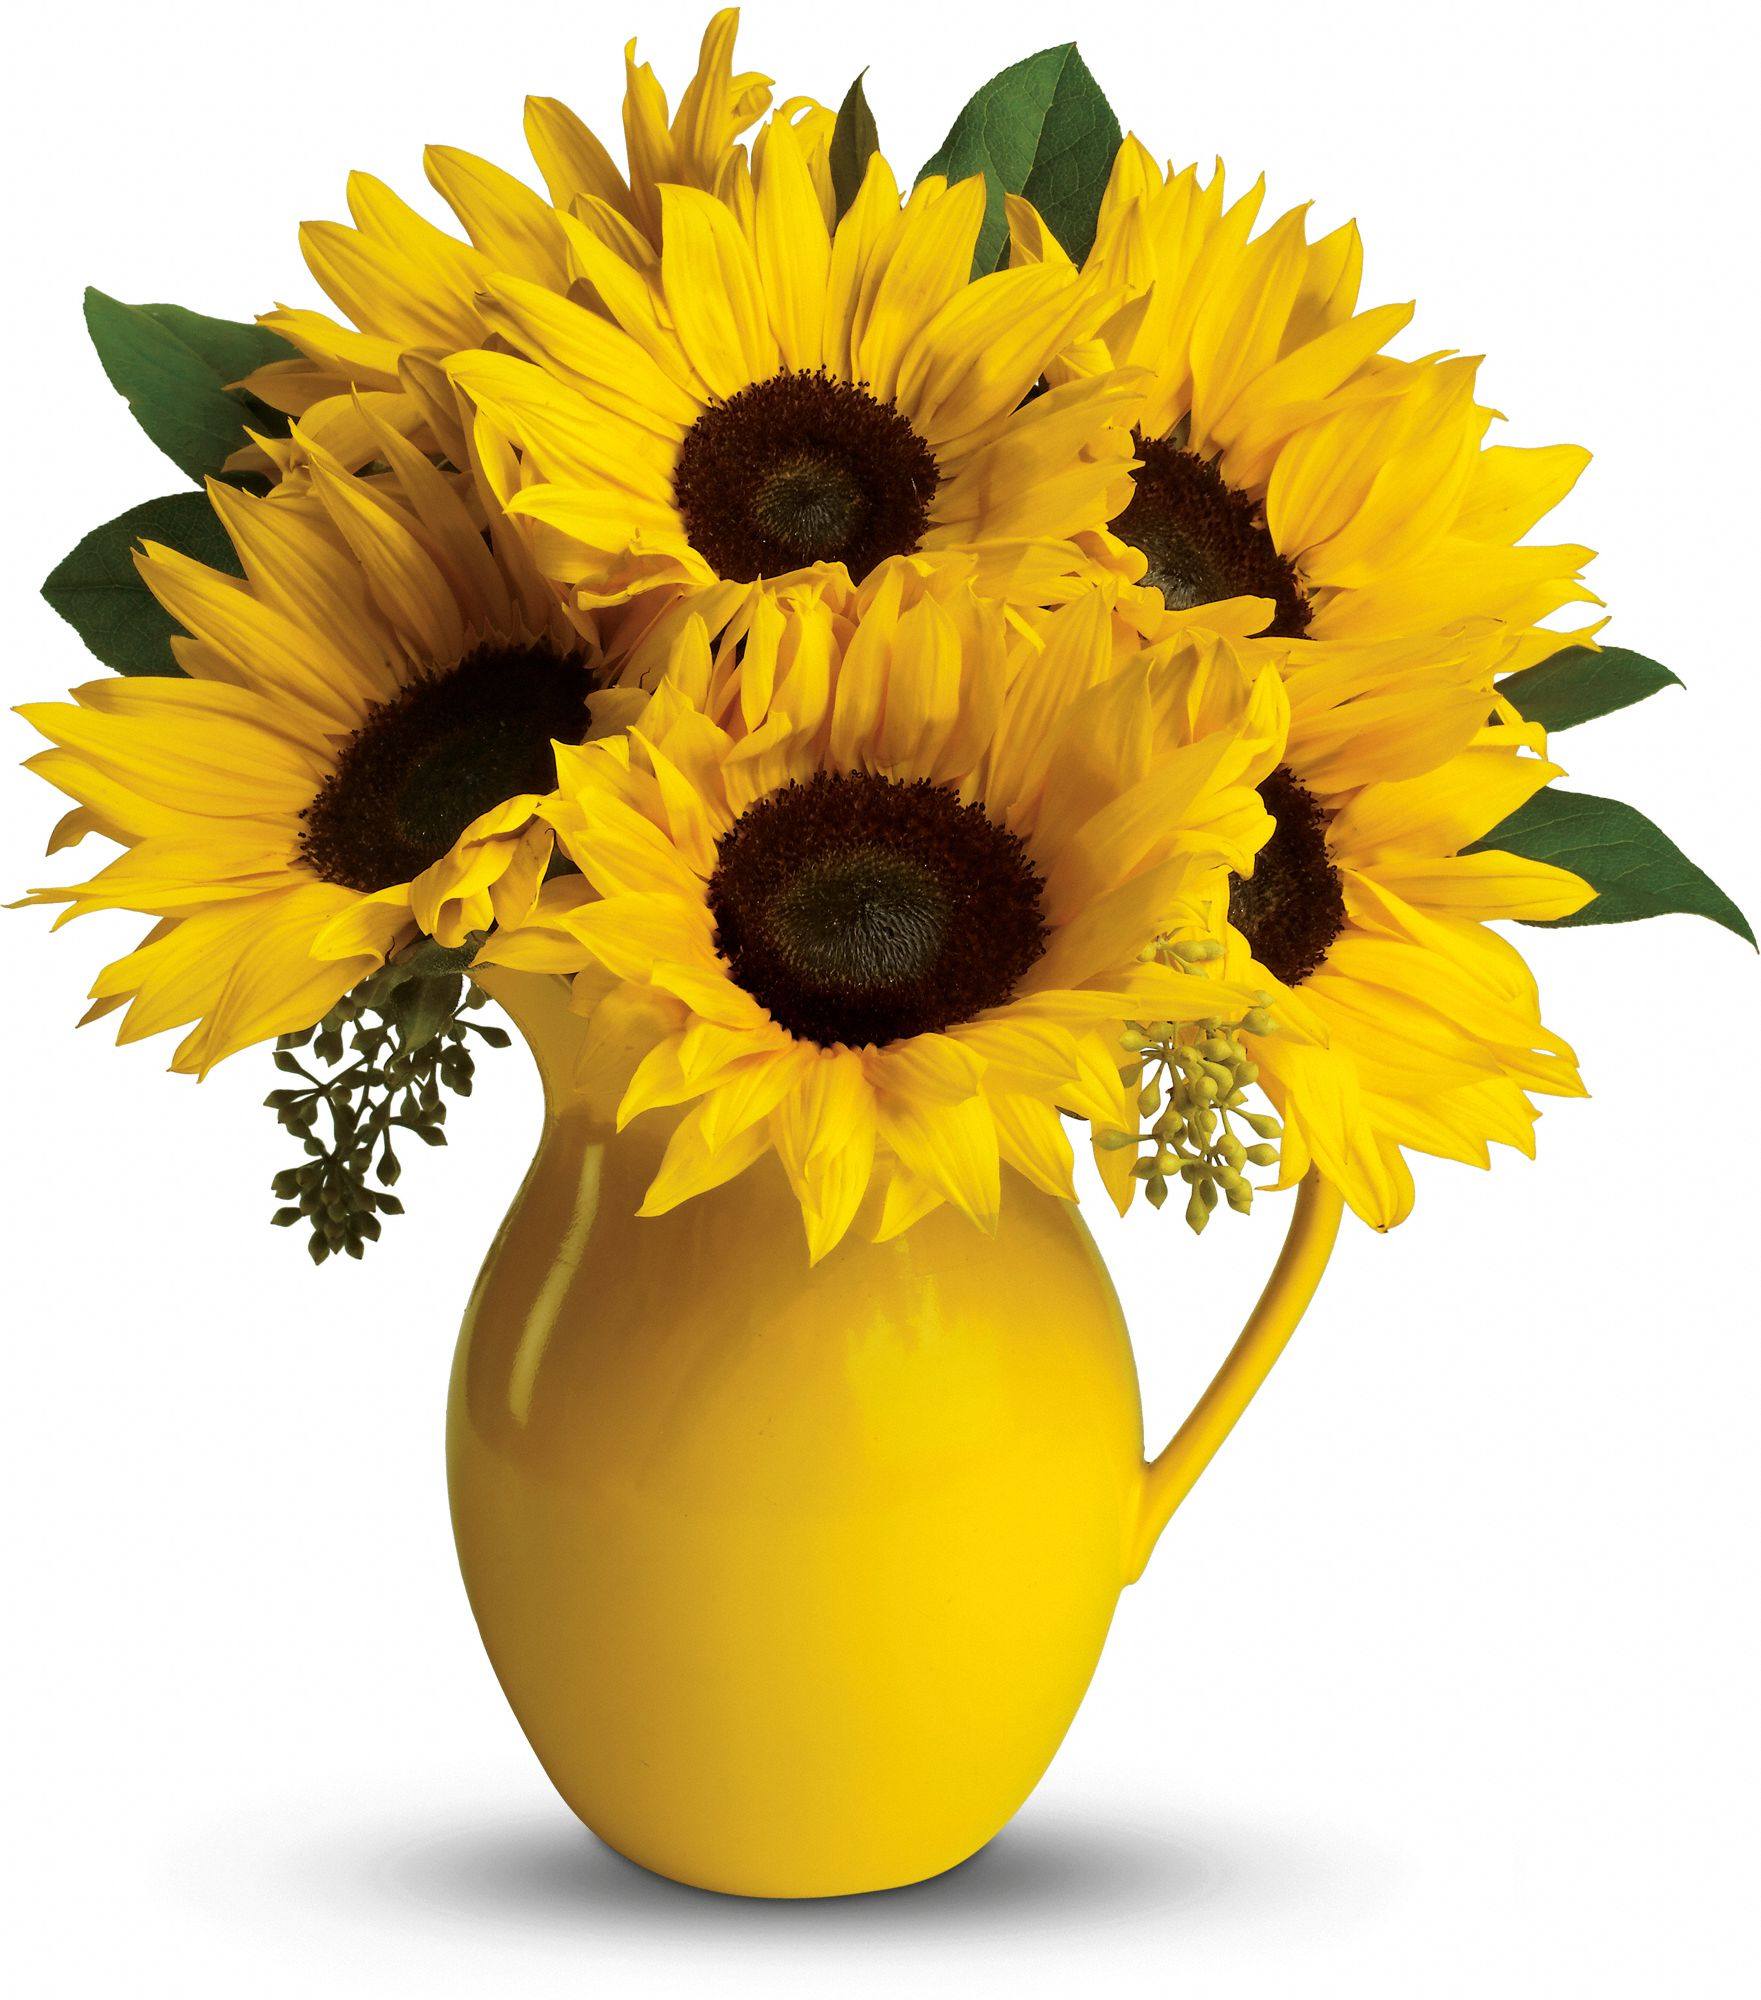 Sunny Day Bouquet of sunflowers in a ceramic pitcher